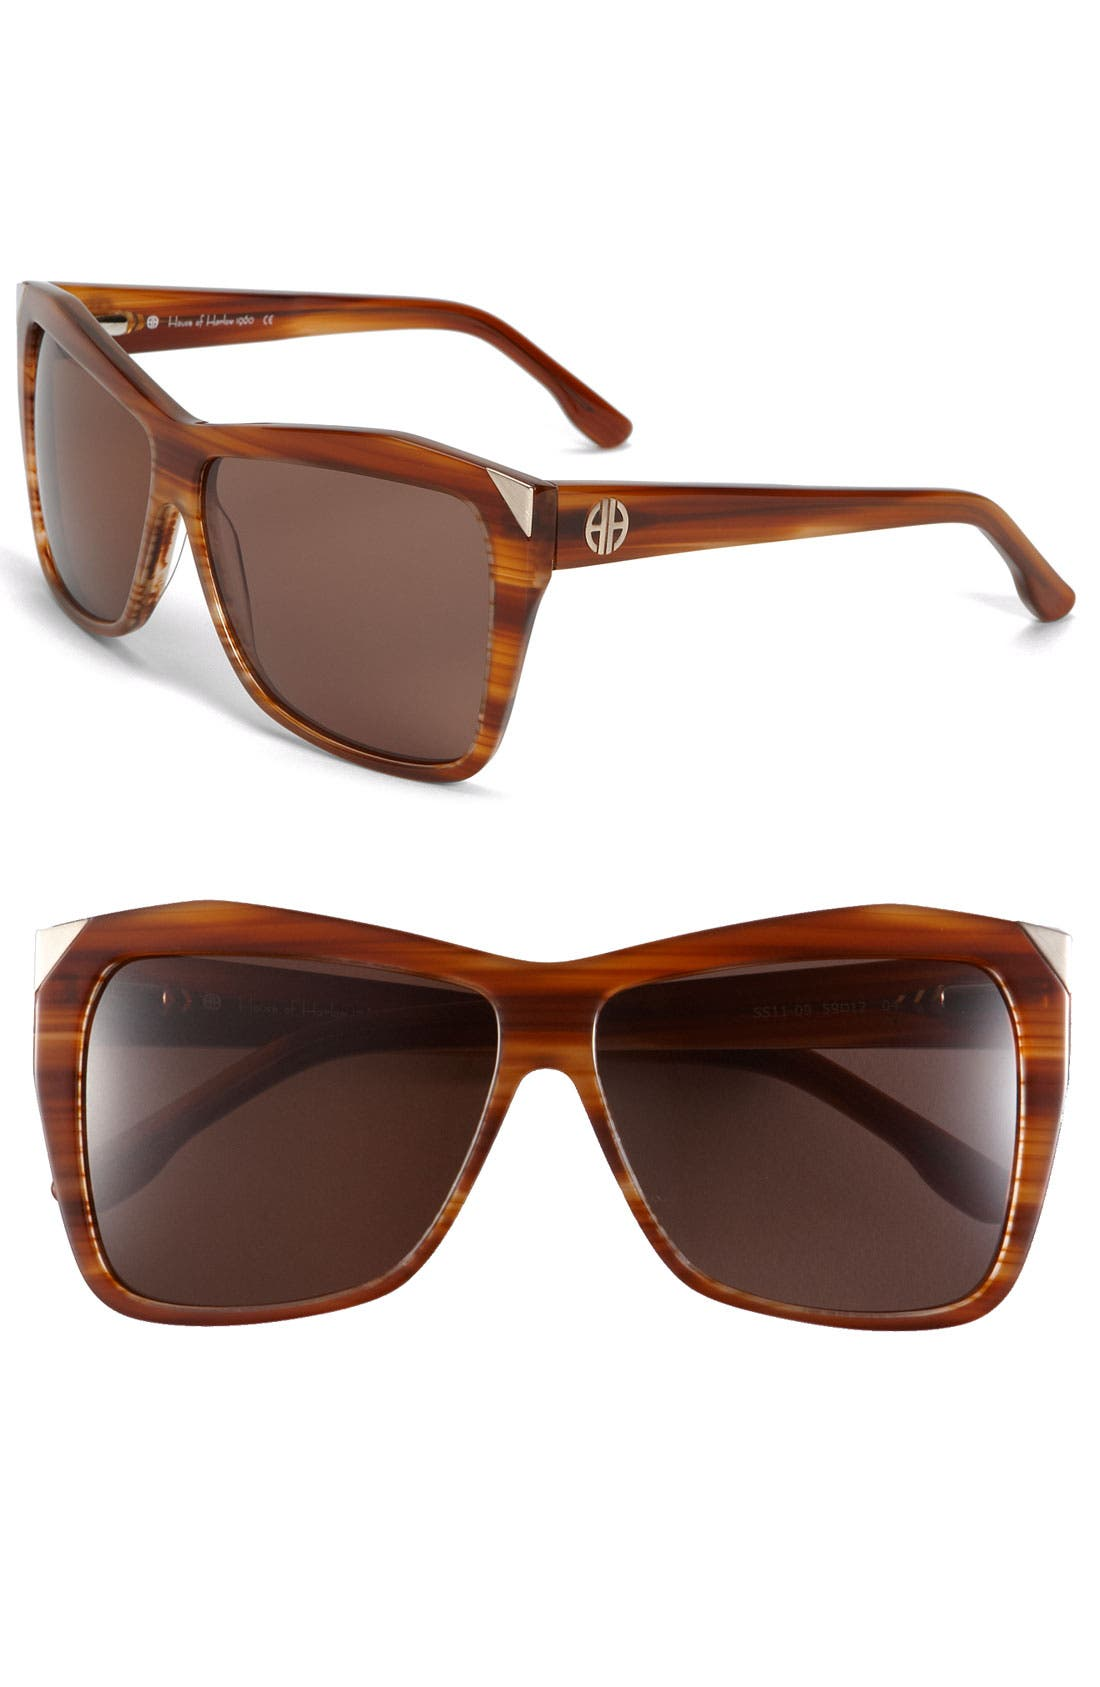 Alternate Image 1 Selected - House of Harlow 1960 'Marie' Sunglasses